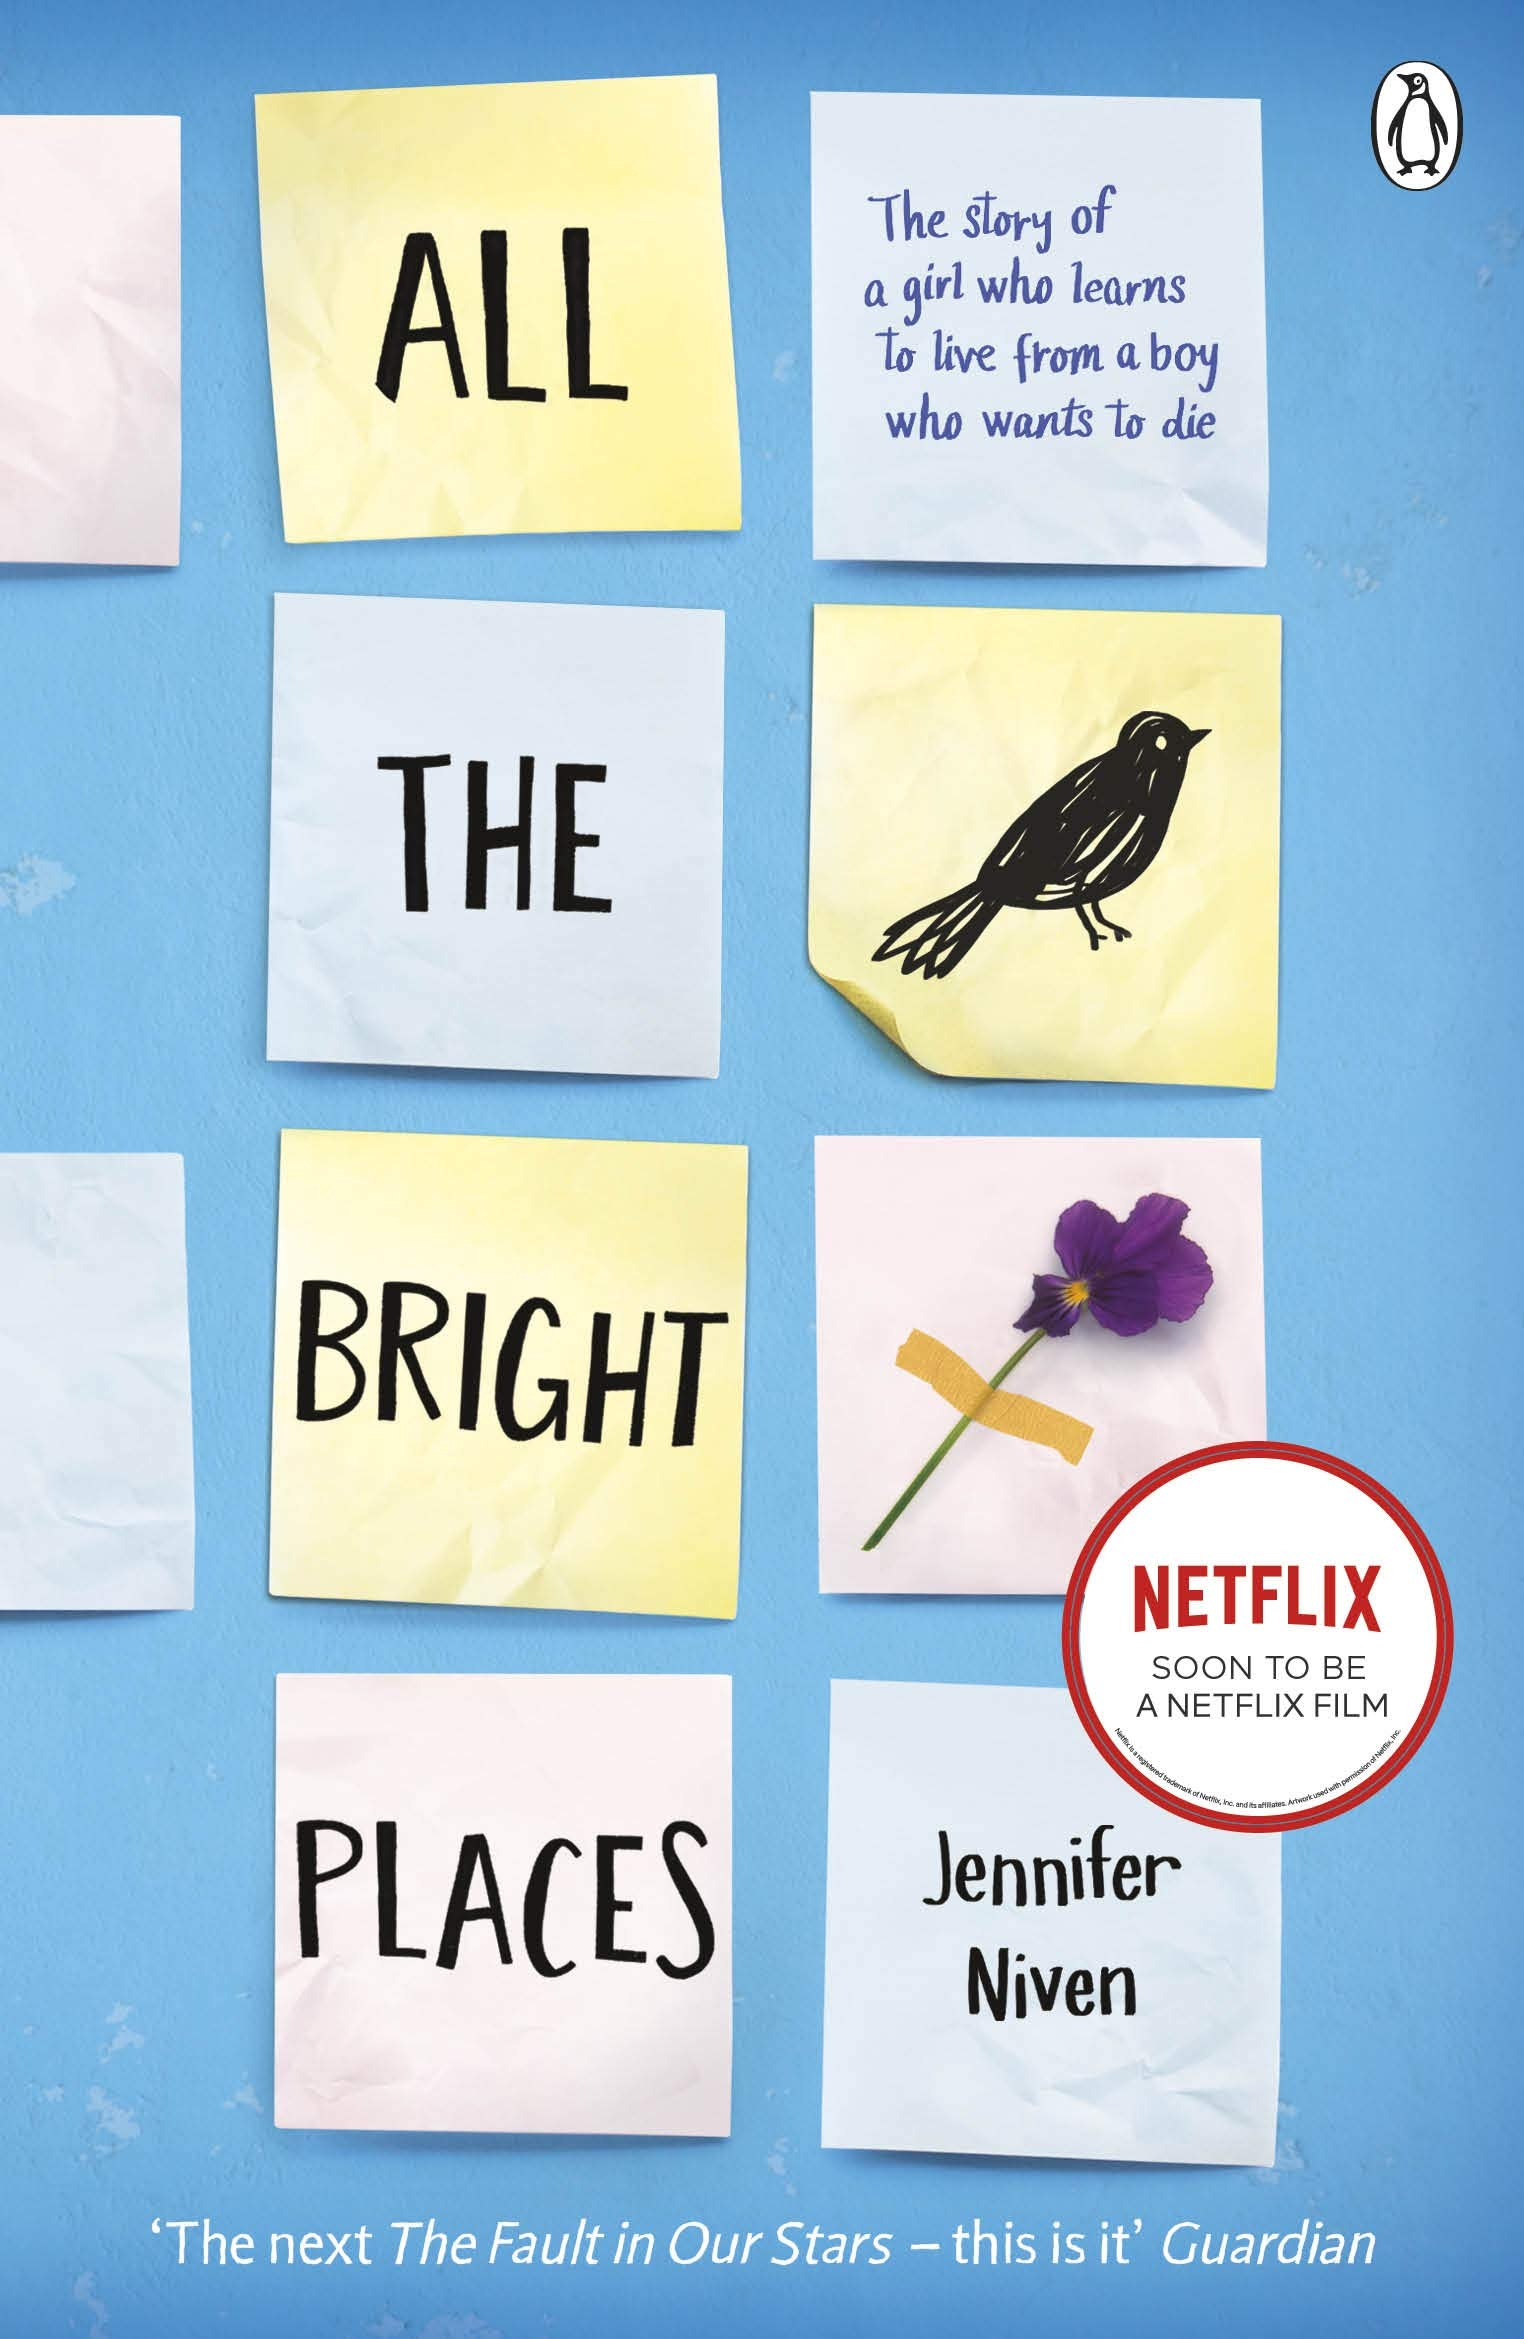 Book Review - All the bright places by Jennifer Niven